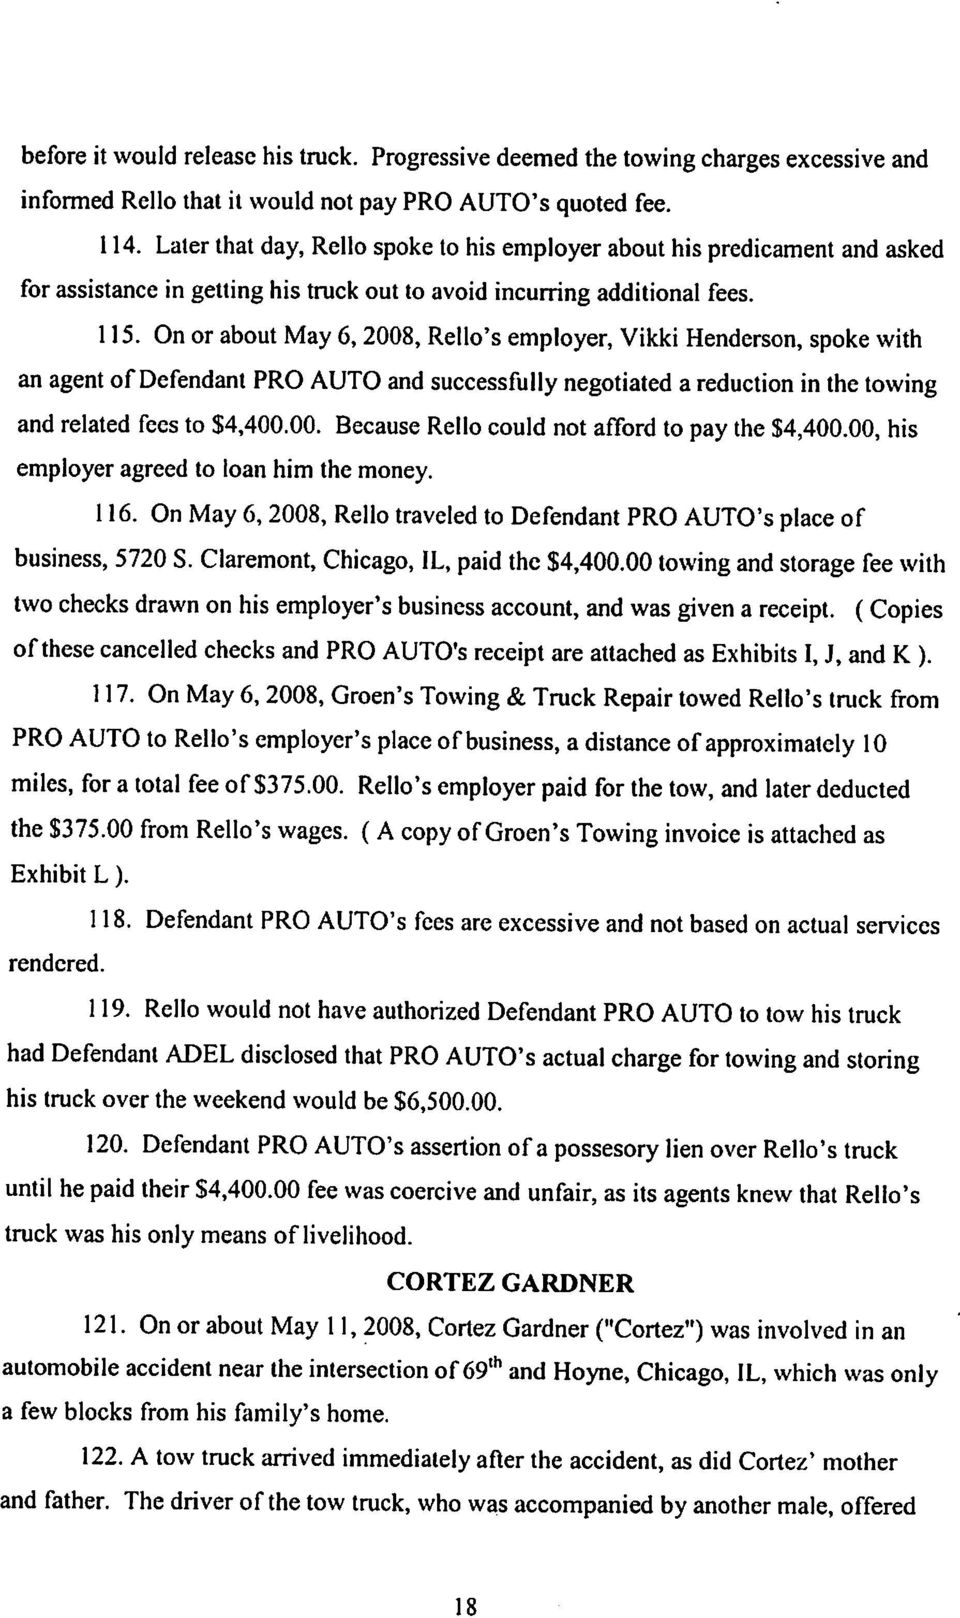 On or about May 6,2008, Rello's employer, Vikki Henderson, spoke with an agent of Defendant PRO AUTO and successfully negotiated a reduction in the towing and related fees to $4,400.00. Because Rello could not afford to pay the $4,400.